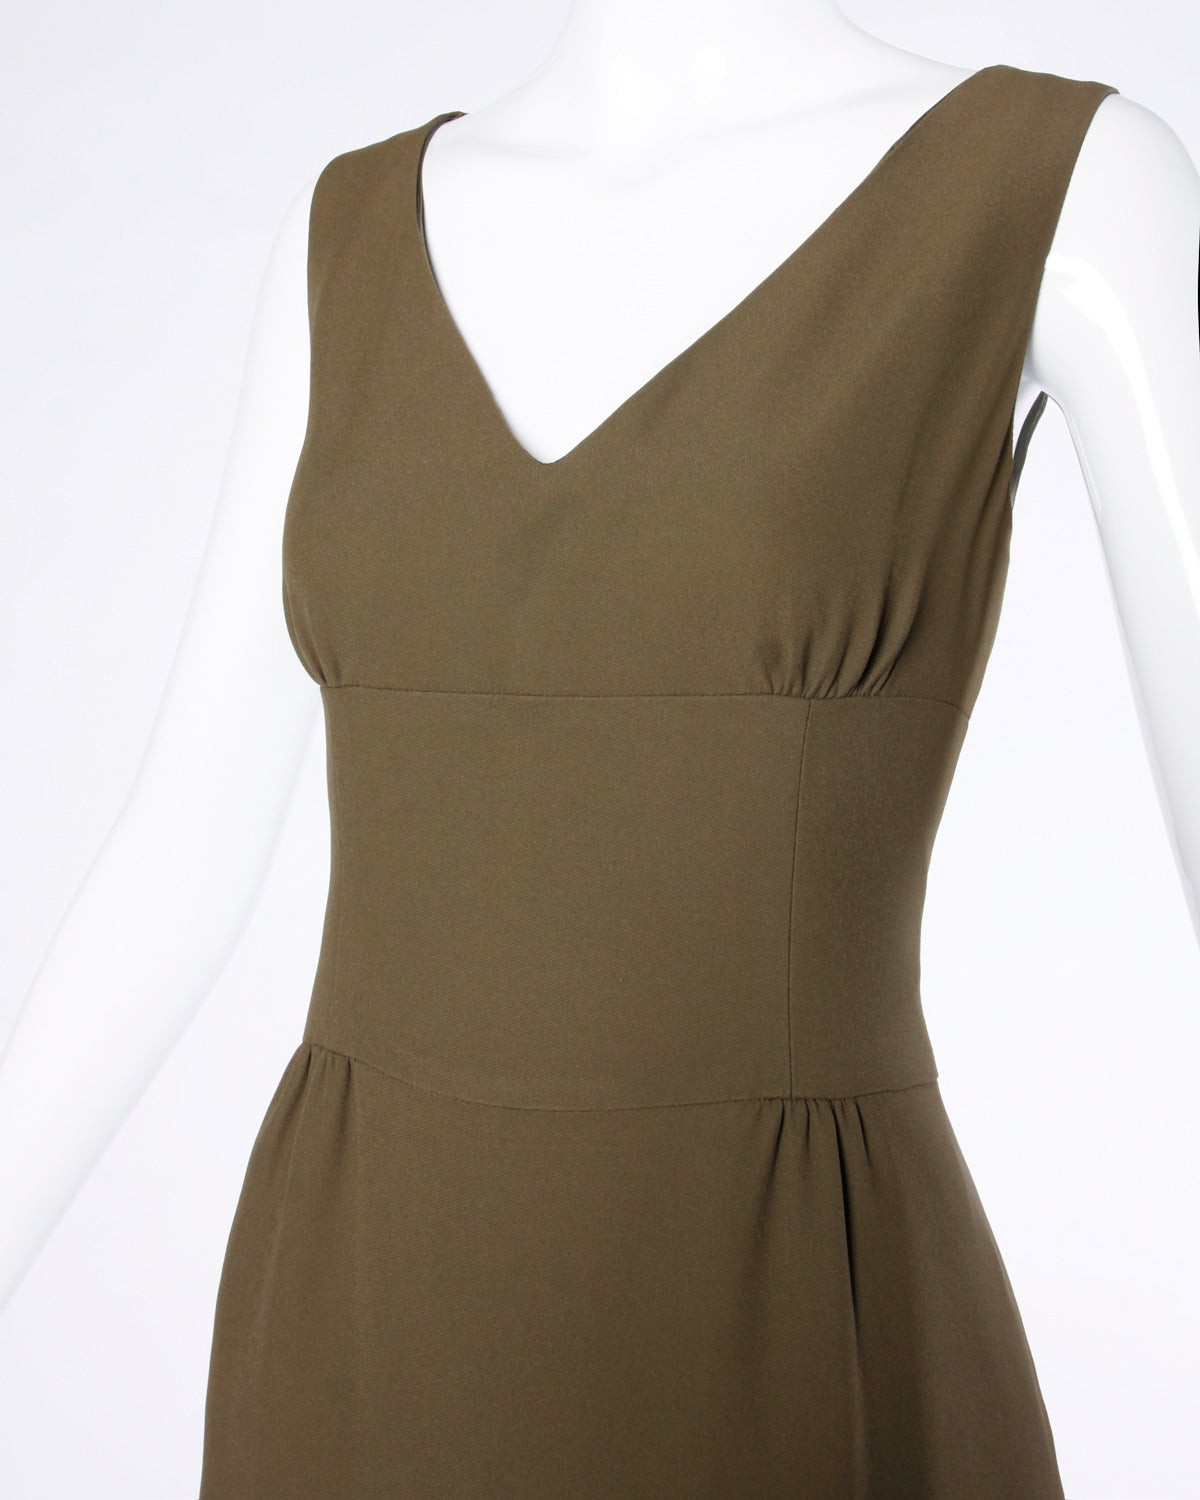 Brown Moschino Vintage 1990s 90s Minimalist Olive Green Maxi Dress For Sale